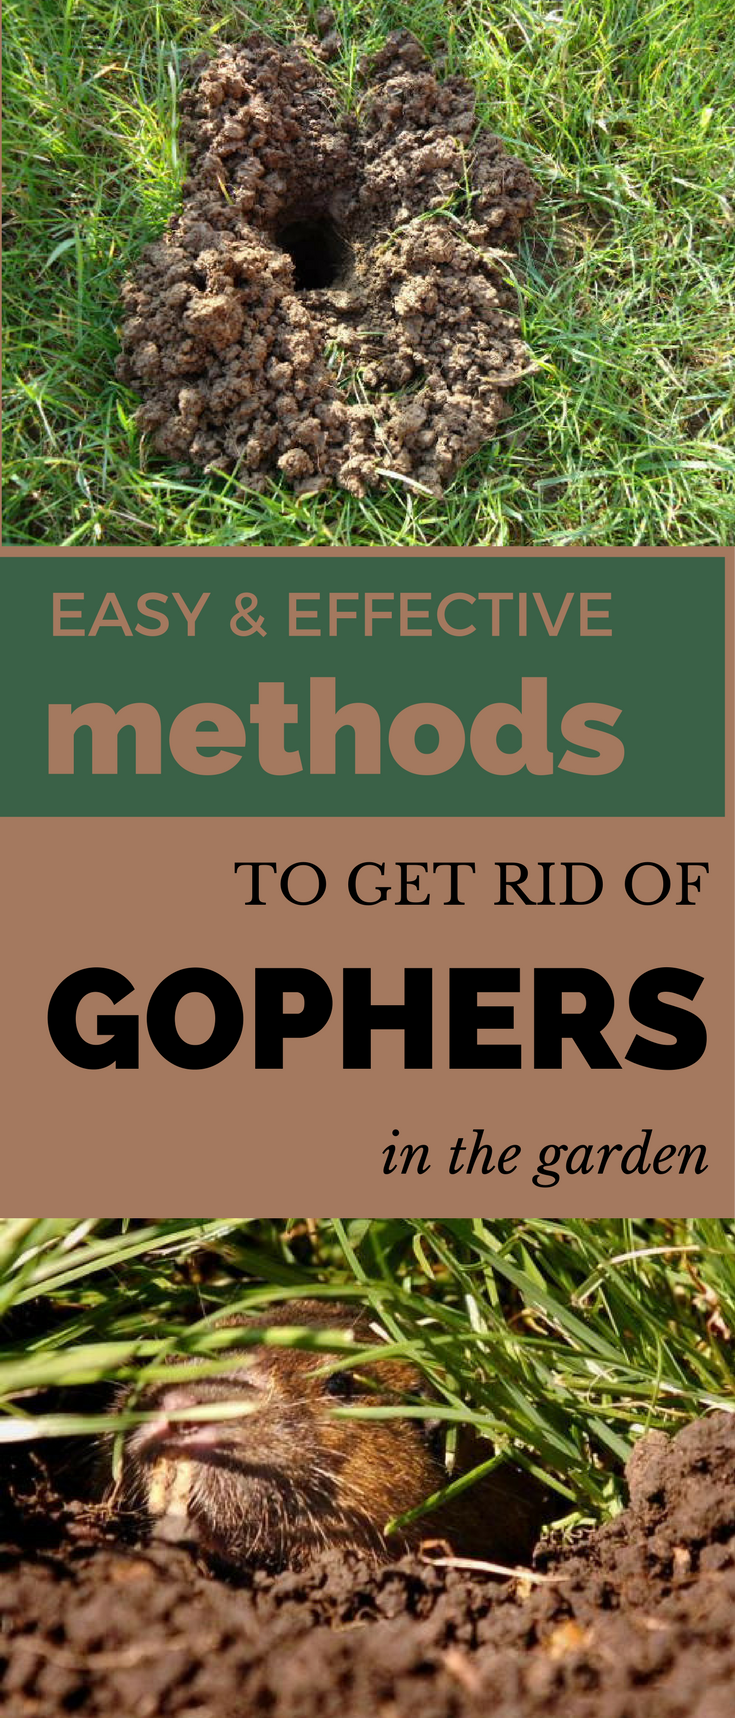 Here Are 4 Easy And Effective Ways To Get Rid Of Gophers In The Garden